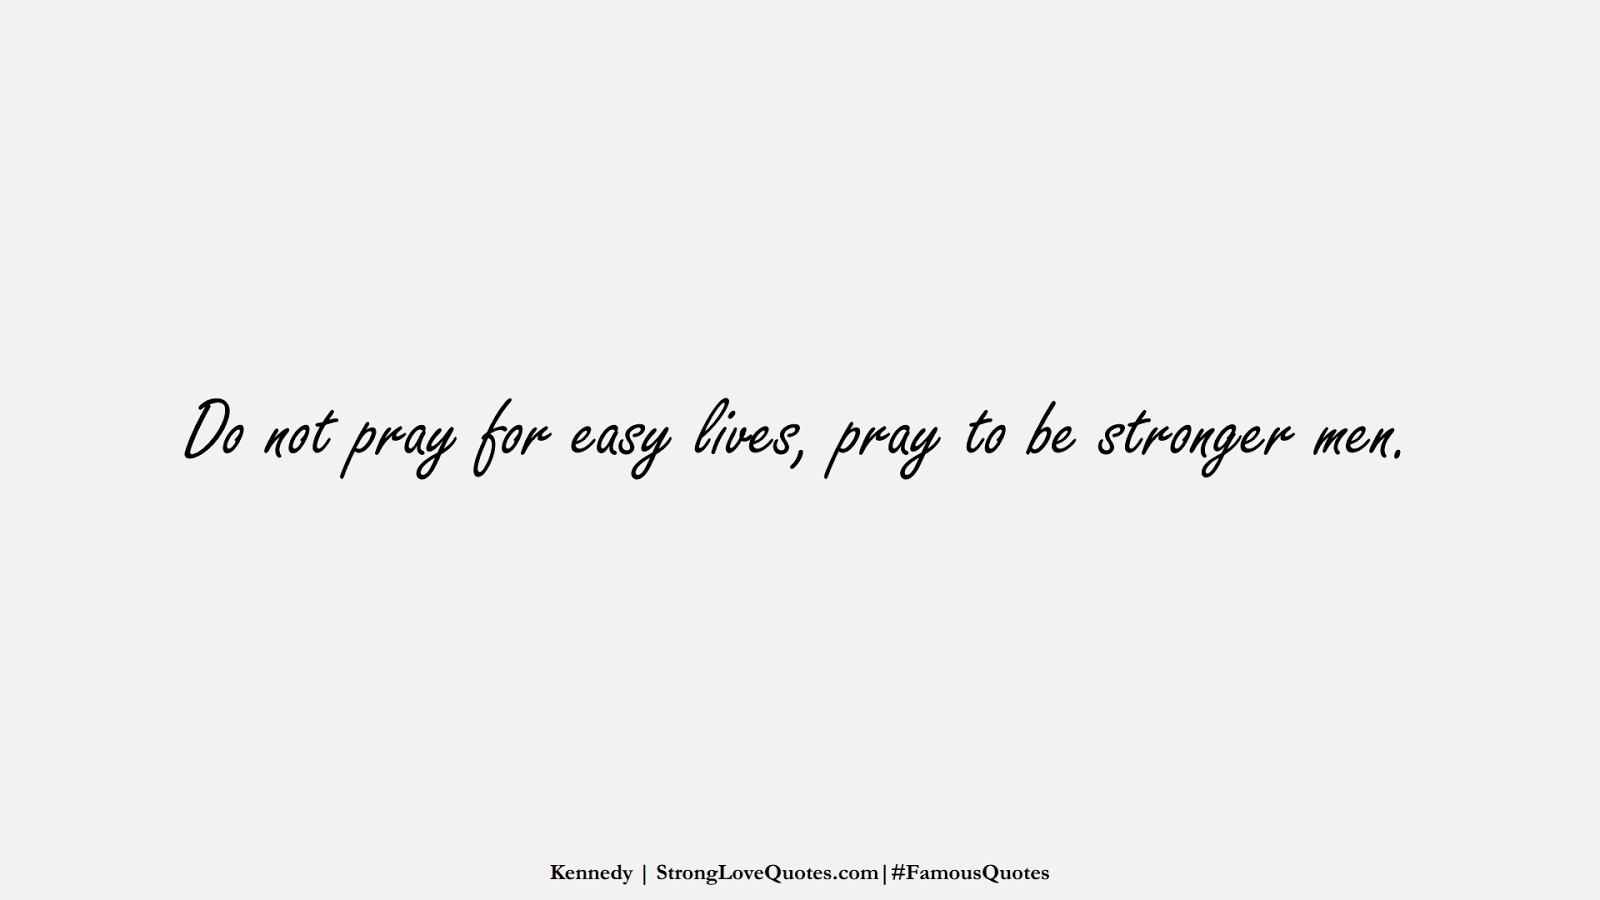 Do not pray for easy lives, pray to be stronger men. (Kennedy);  #FamousQuotes